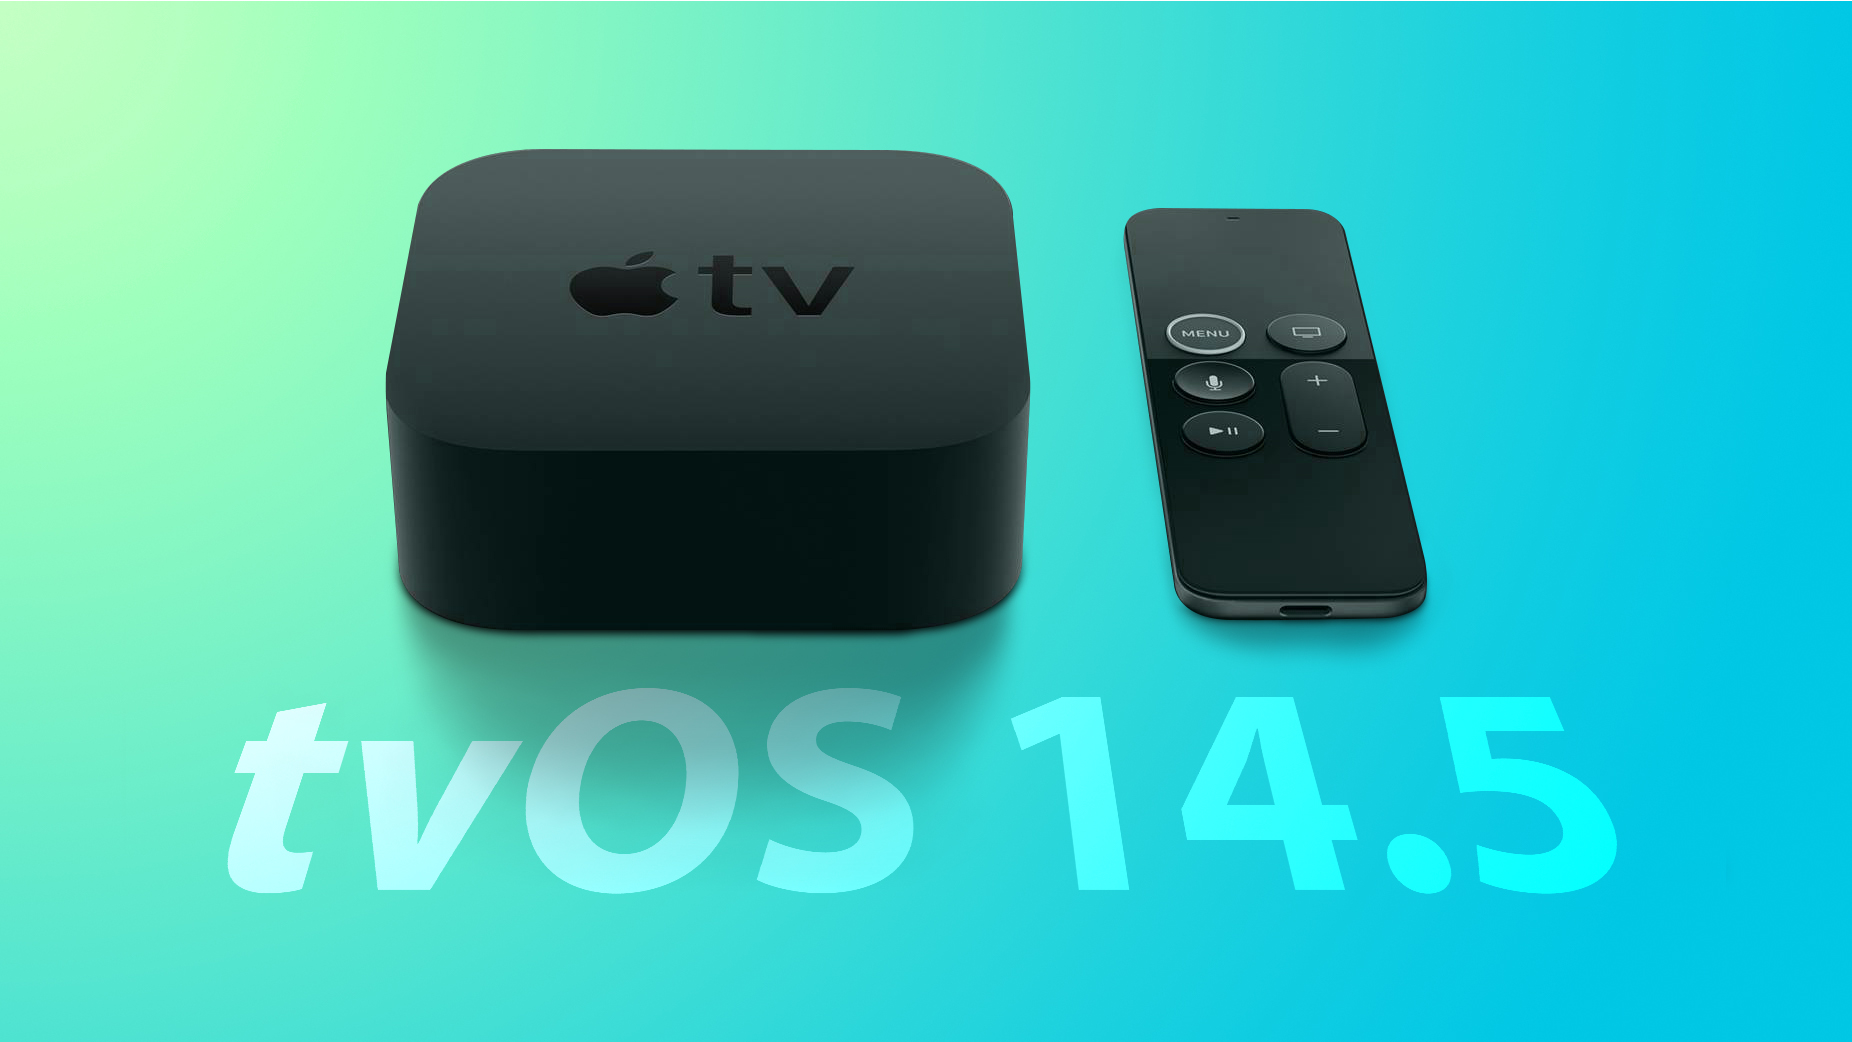 Apple Releases tvOS 14.5 With New Color Balance Feature, Expanded Controller Support